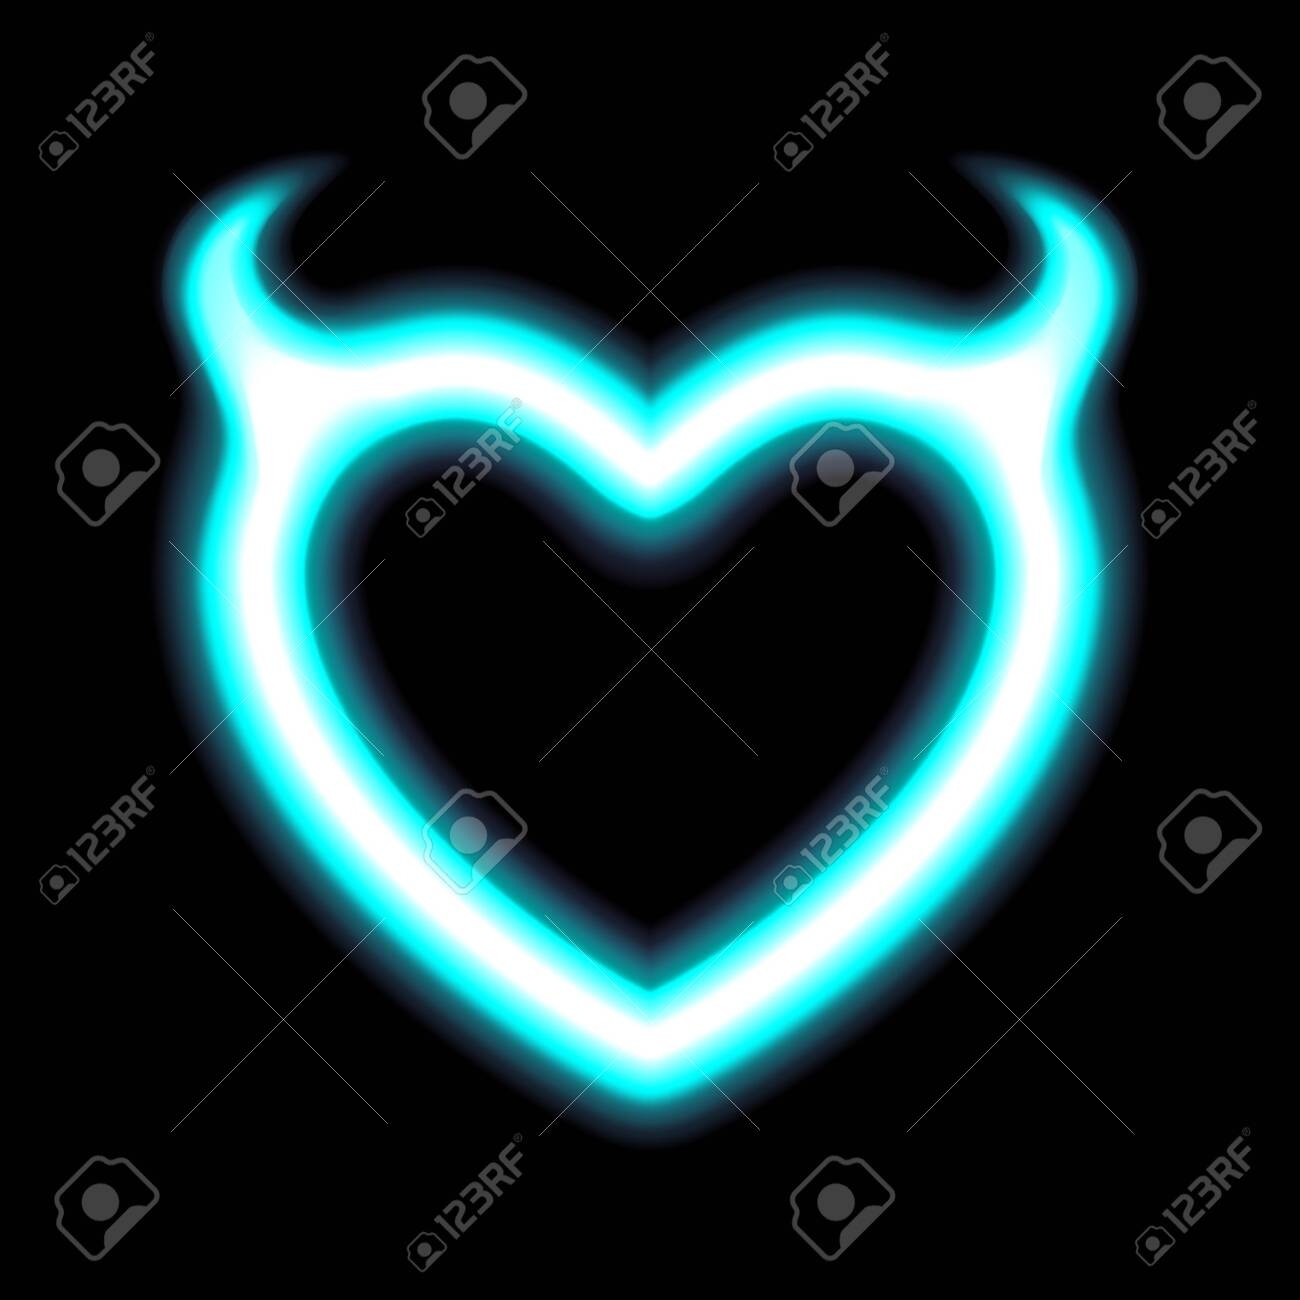 Heart Contour Neon Or Blue Glow Radiant Effect Of Love With Devil Royalty Free Cliparts Vectors And Stock Illustration Image 131951516